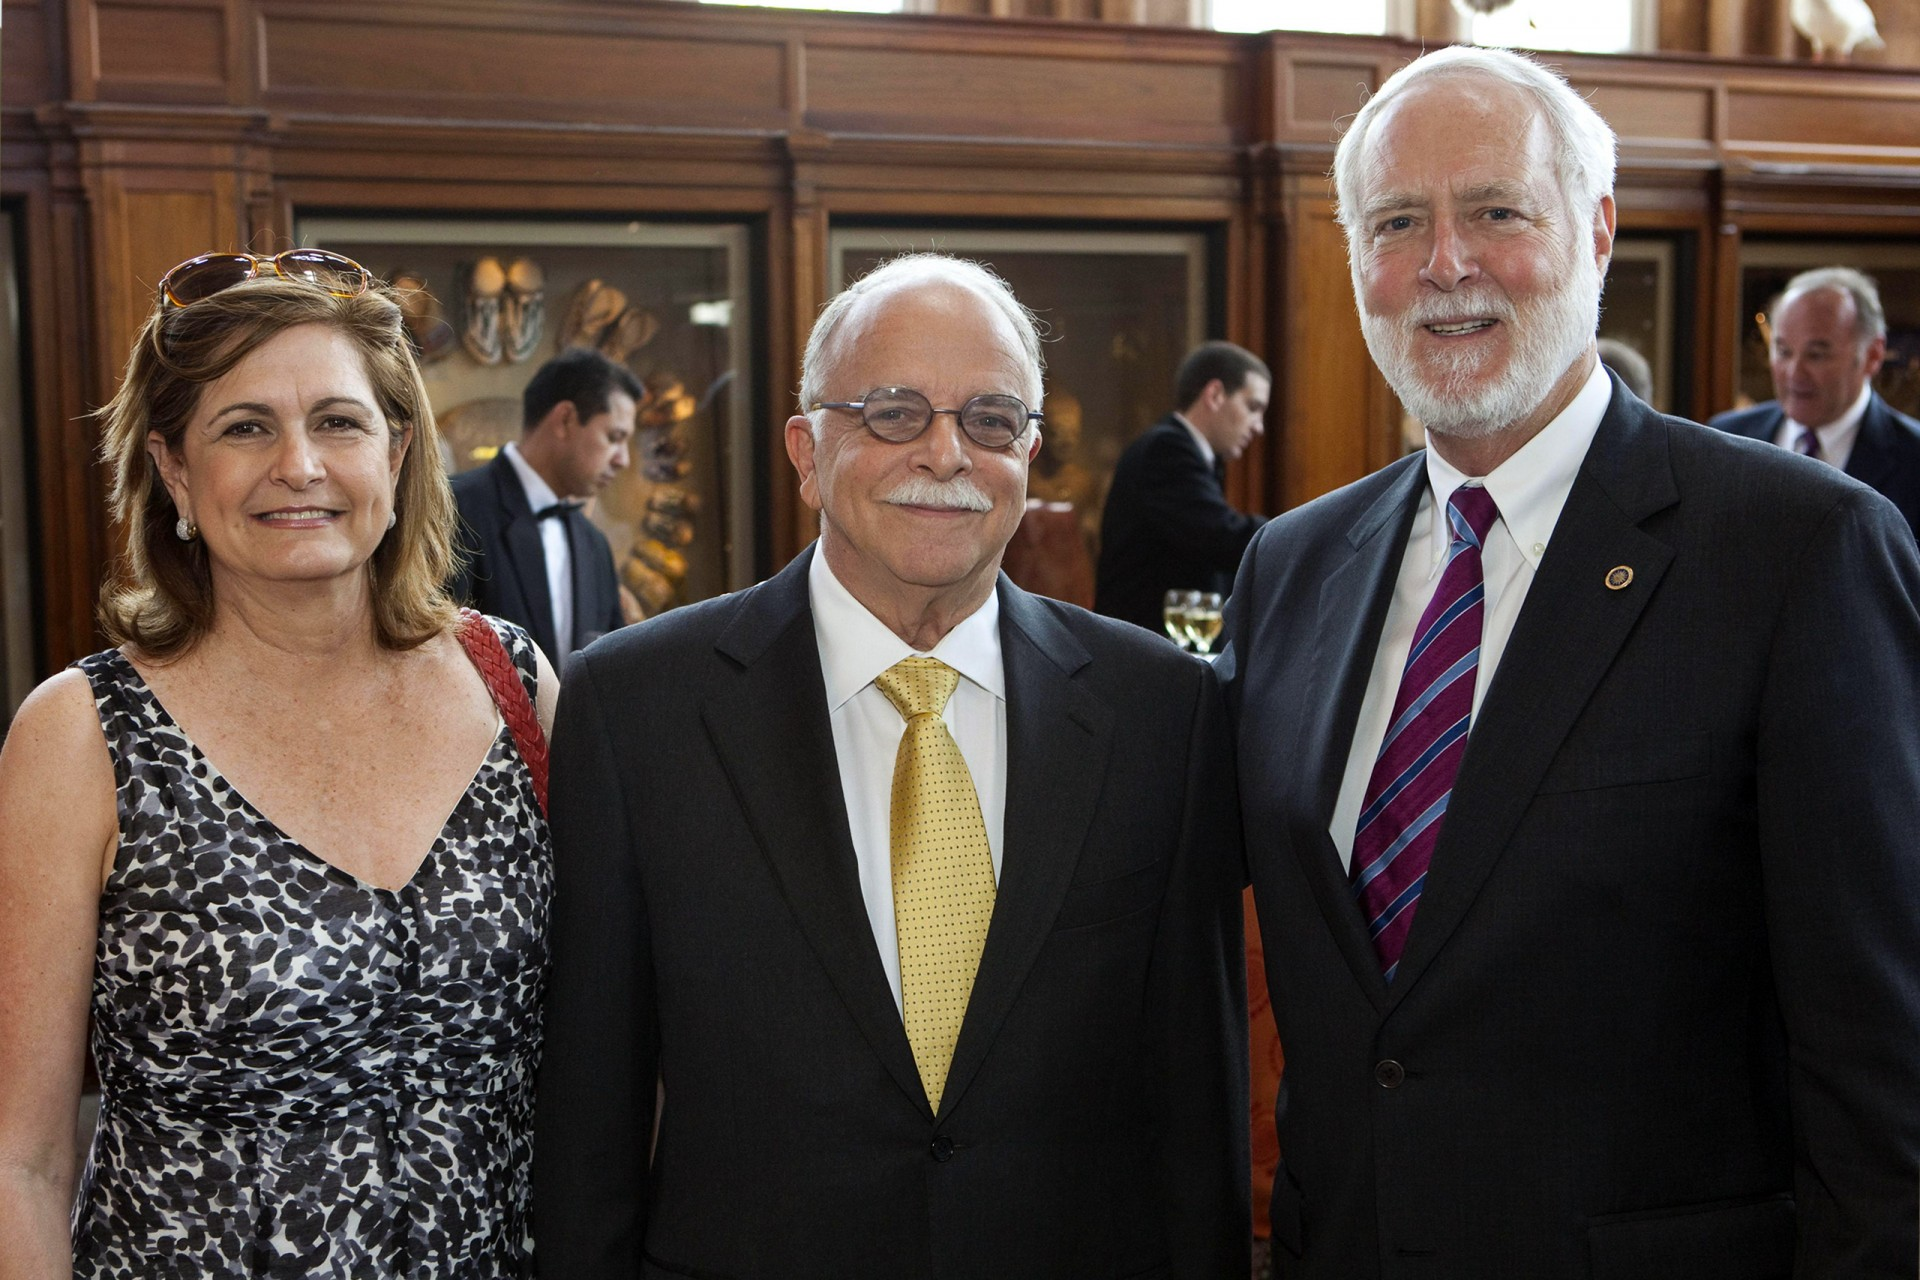 Ira Rubinoff, center, with his wife Anabella and Smithsonian Secretary Wayne Clough